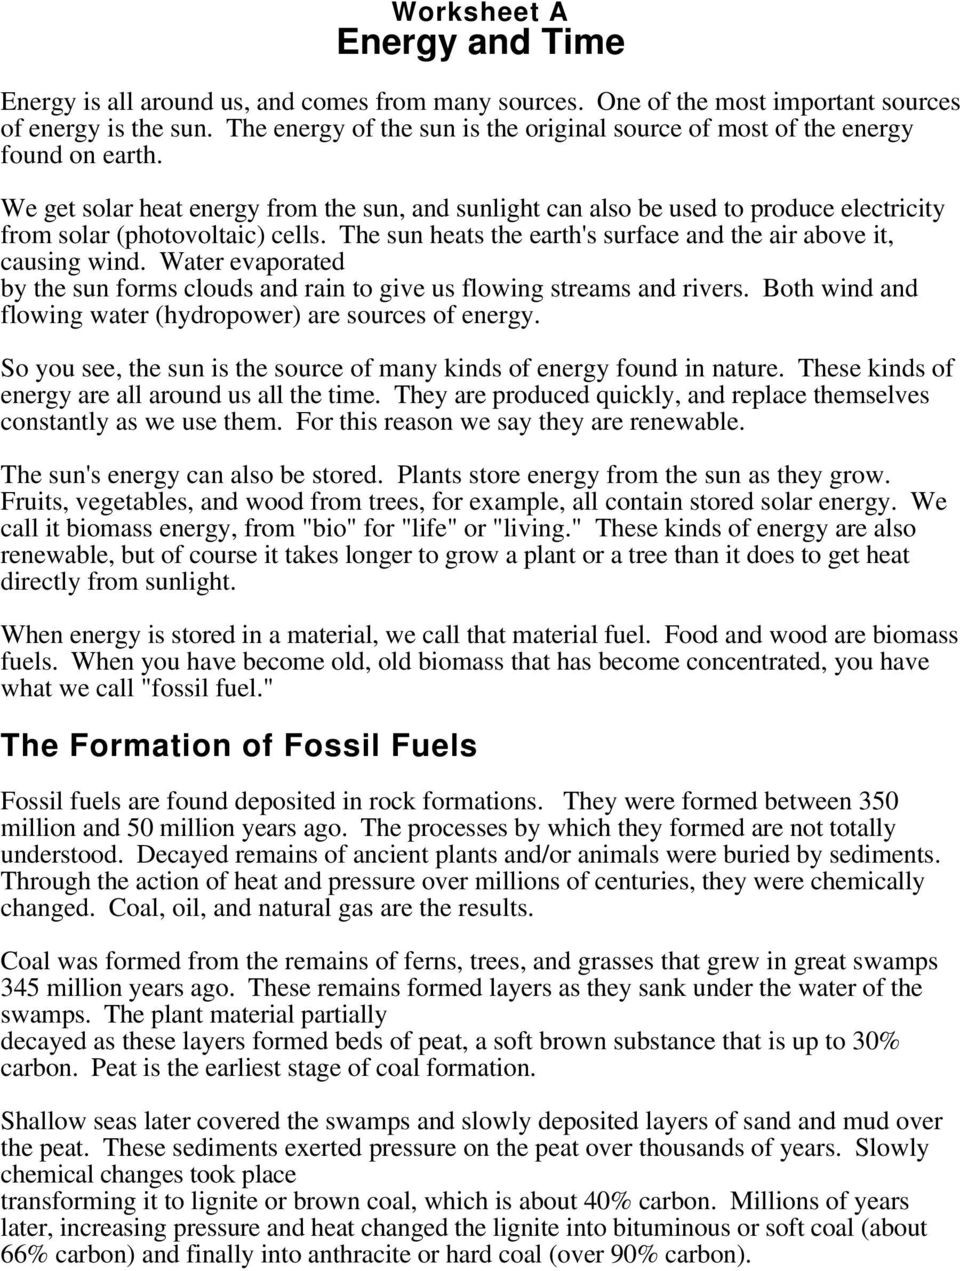 Fossil Fuels Worksheet Middle School the formation Of Fossil Fuels Pdf Free Download